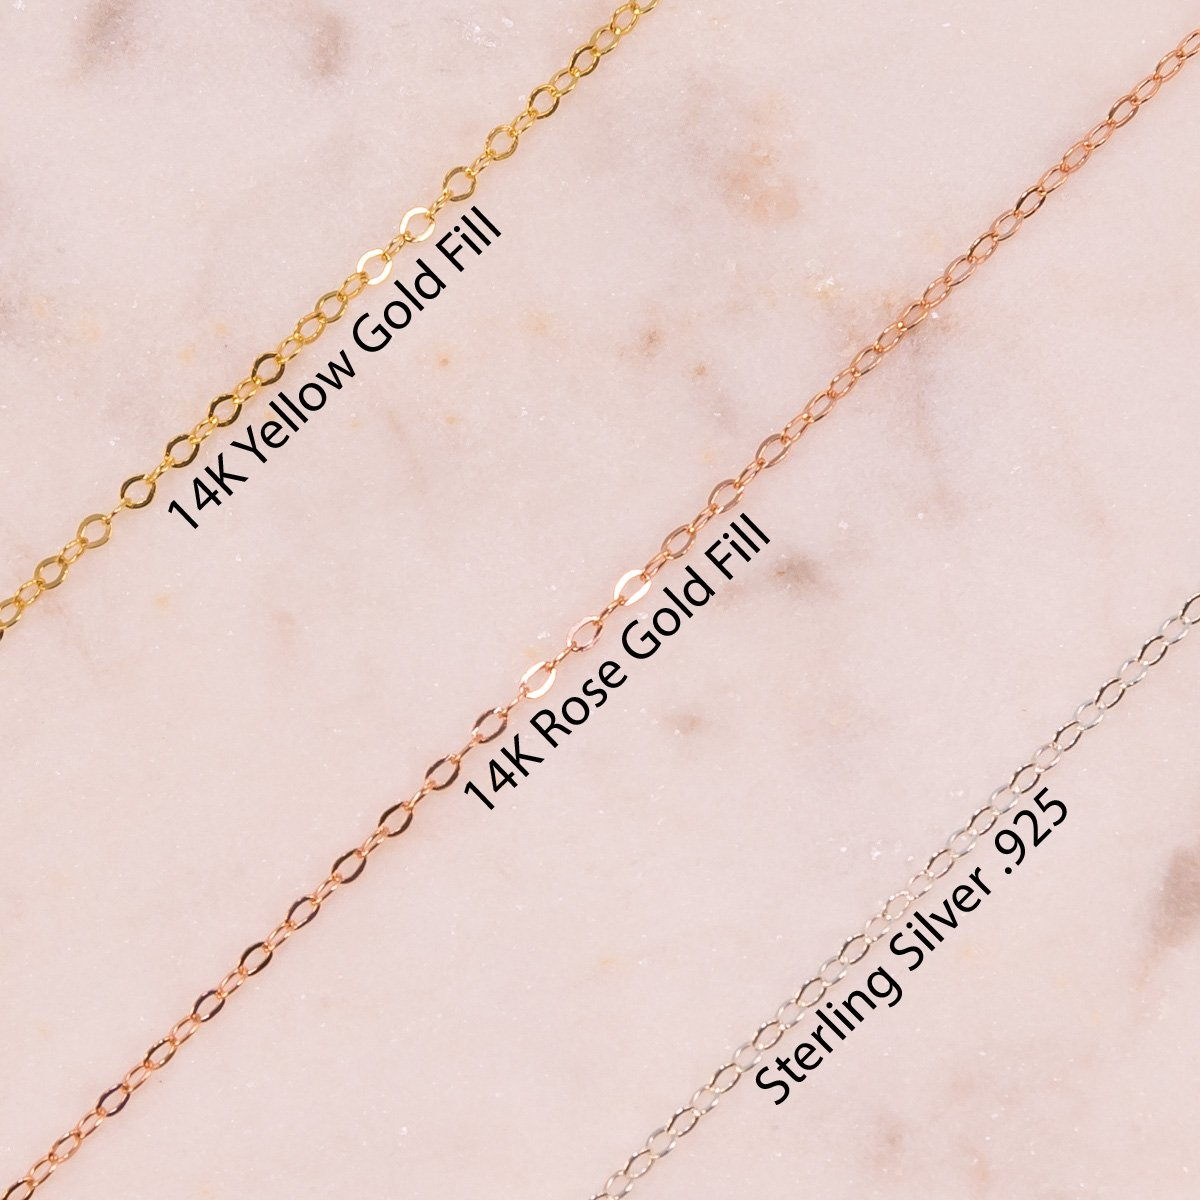 14k Gold Fill Chain, 14k Rose Gold Fill Chain, Sterling Silver Chain | Liz.Beth Jewelry Co.